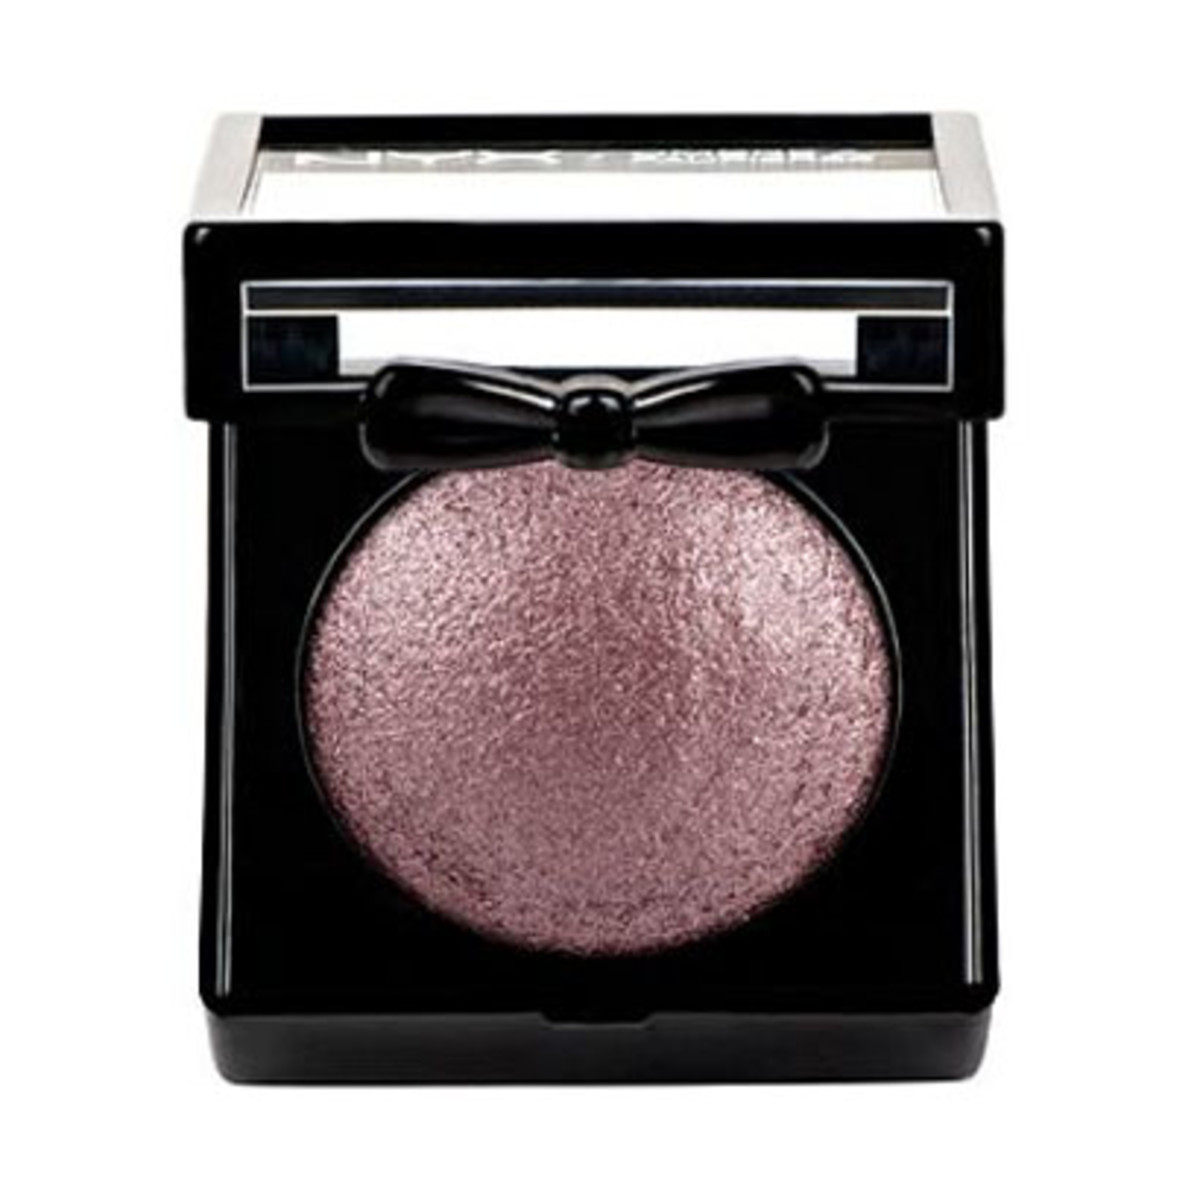 NYX Cosmetics Baked Eyeshadow in Chance